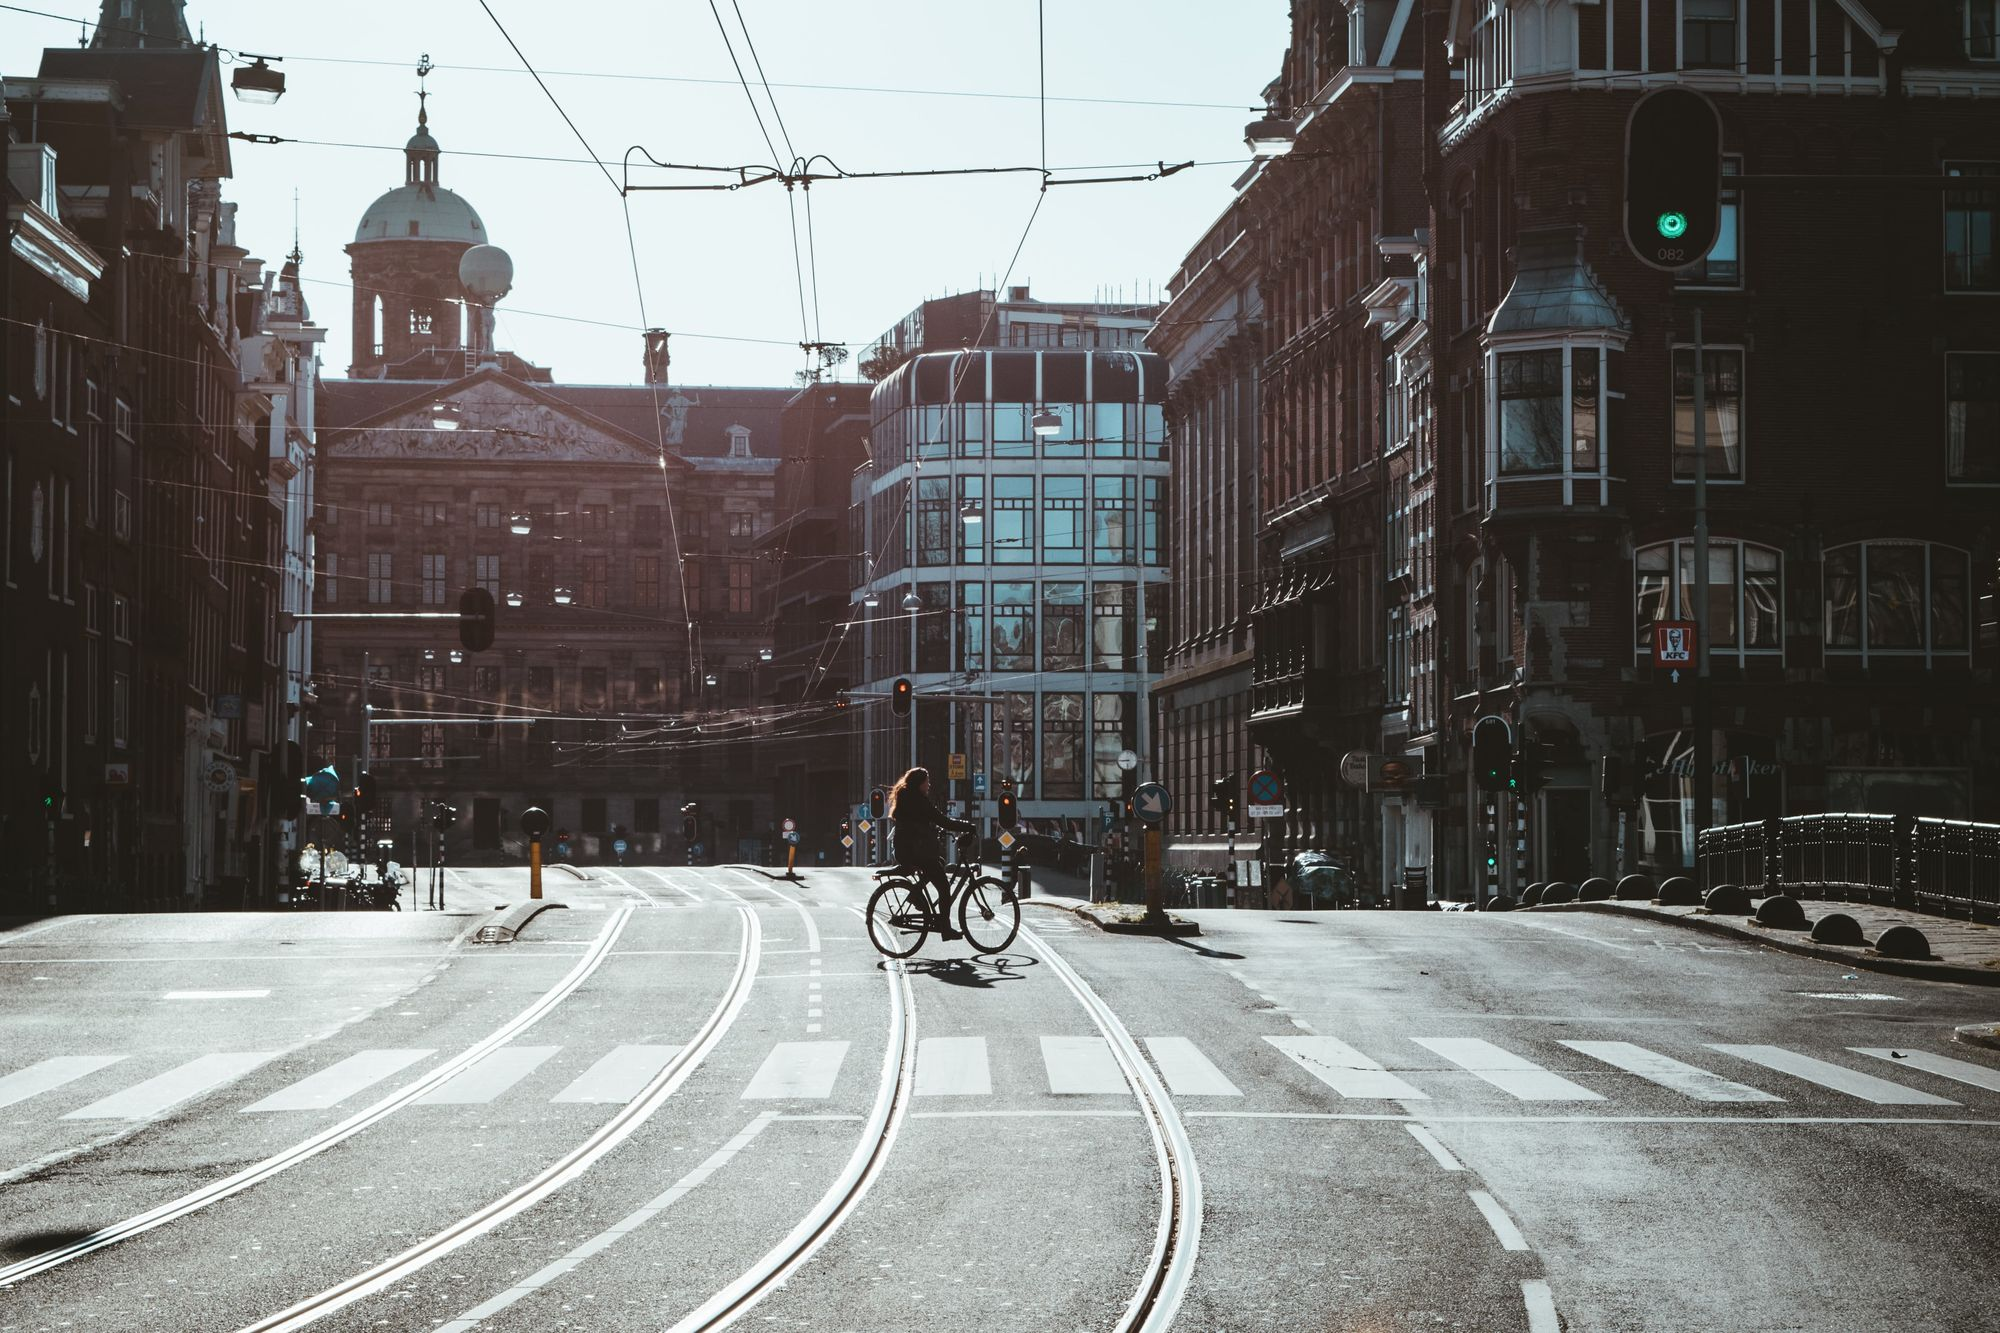 Empty Amsterdisco streets during the COVID-19 pandemic.